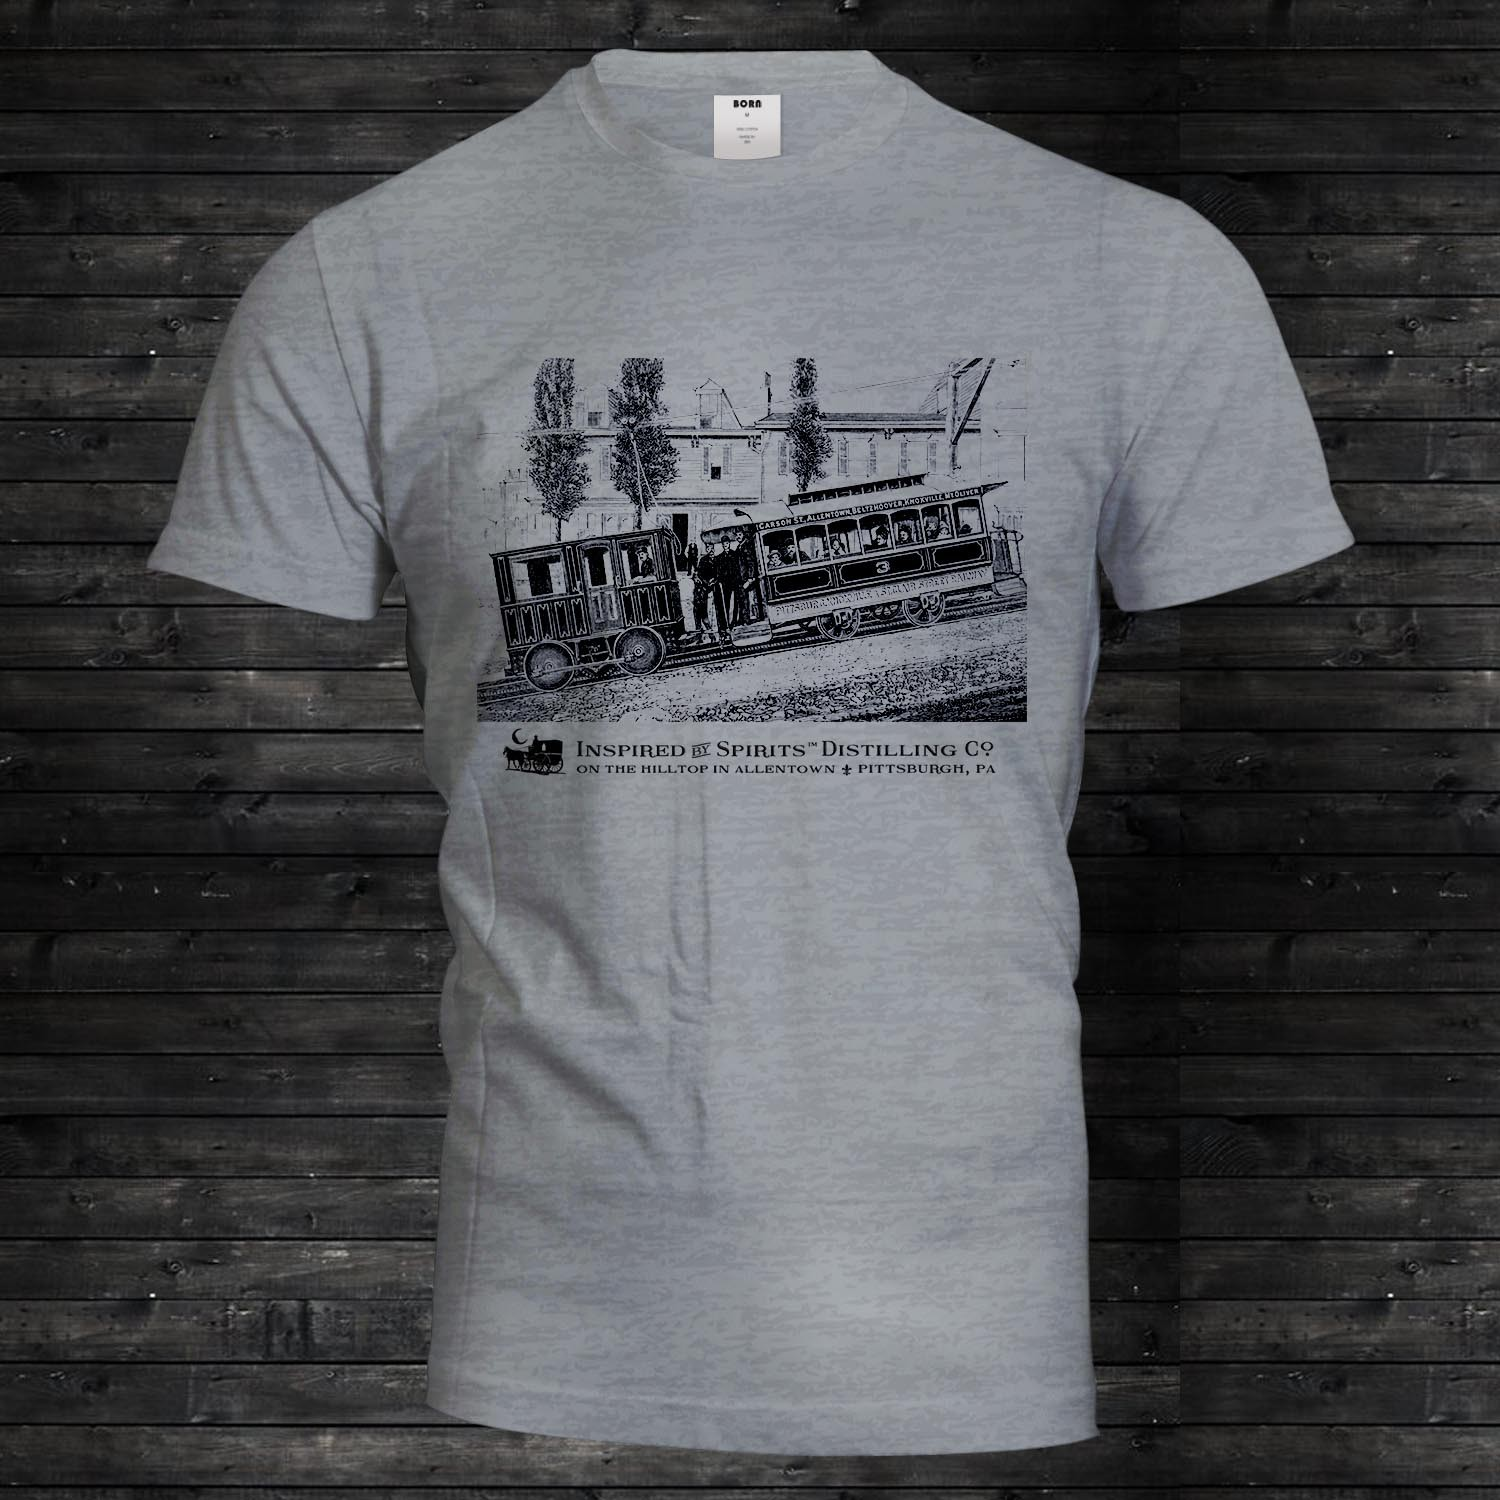 Dr-Tumbletys-Apothecary-inspired-by-spirits-distilling-company-Pittsburgh-allentown-hilltop-allentown-5-five-generations-streetcar-tee-T-heather-grey